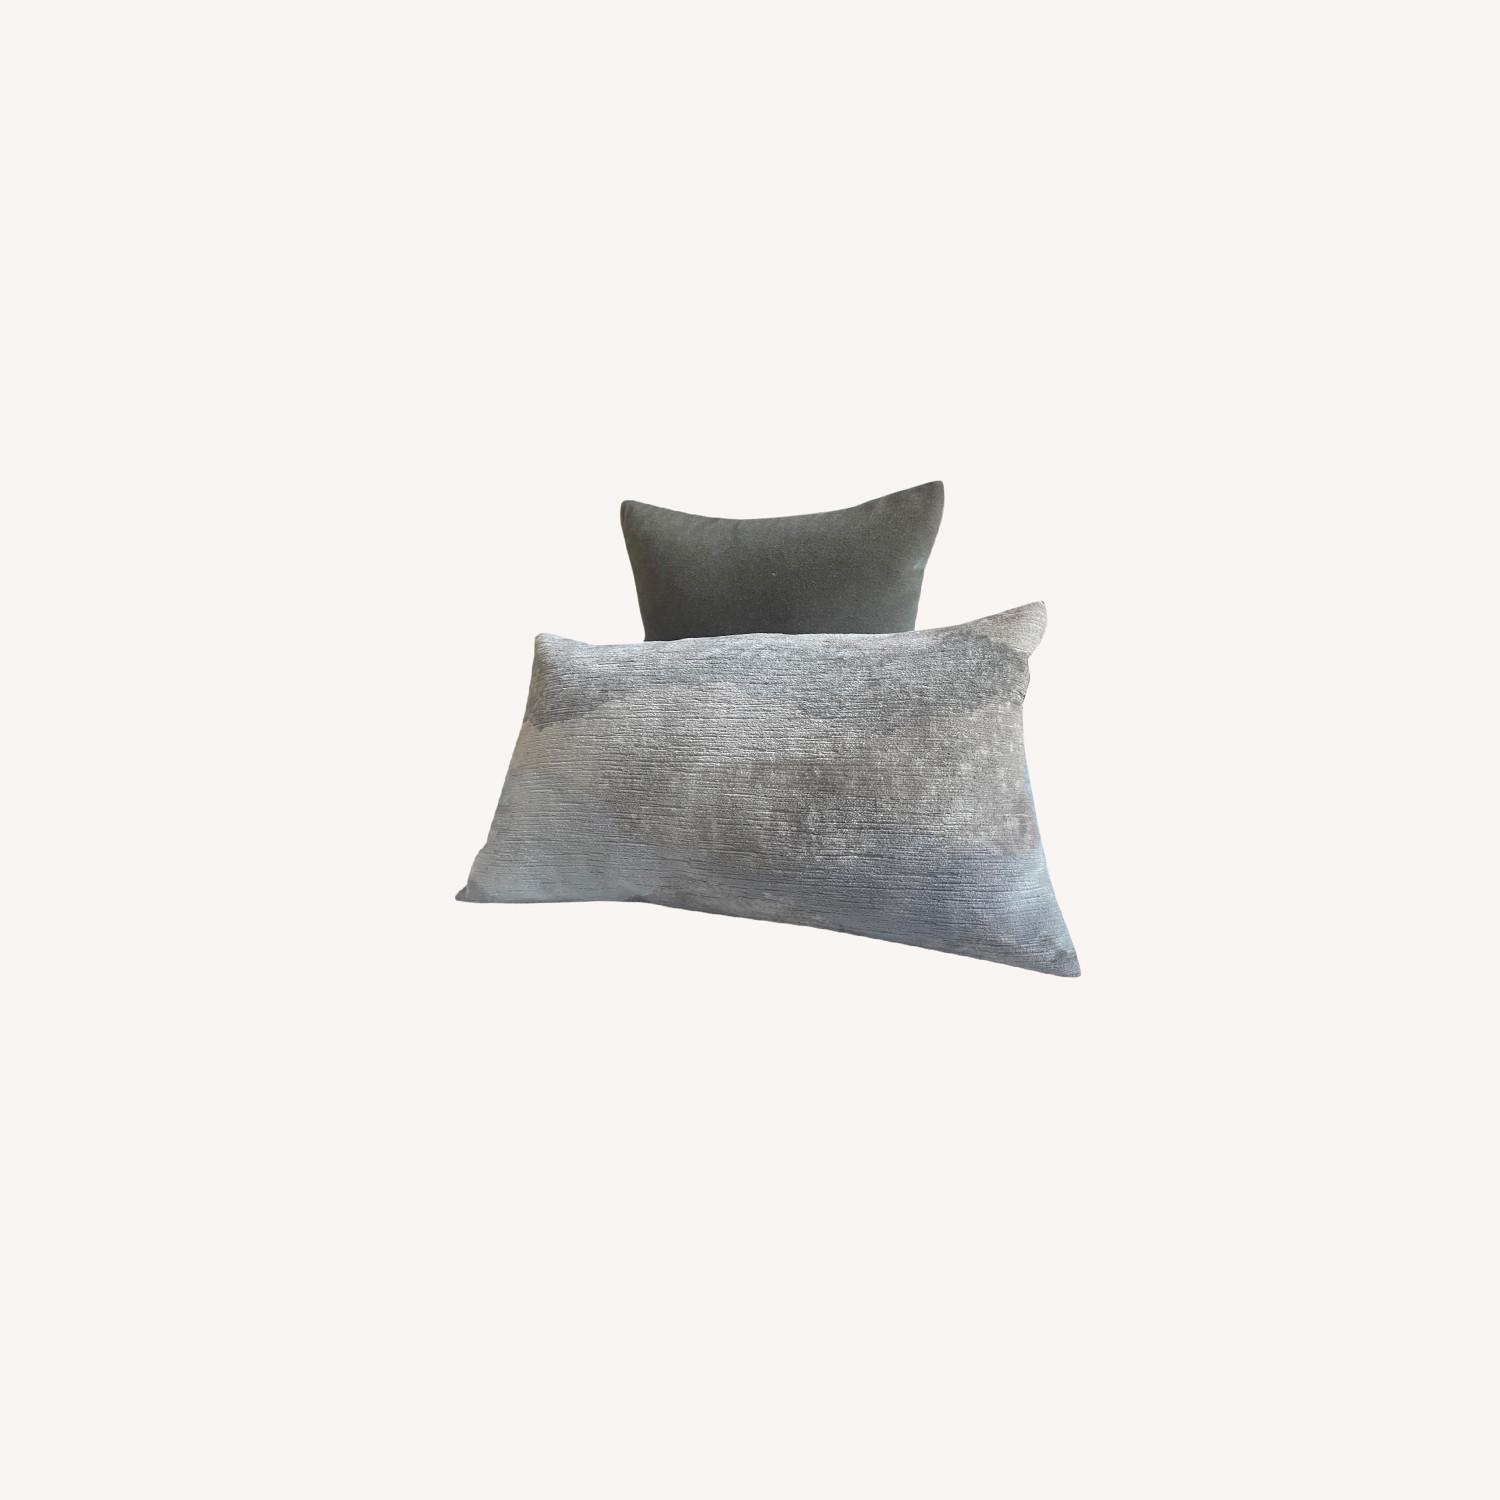 Room and Board Modern Pillows - image-0